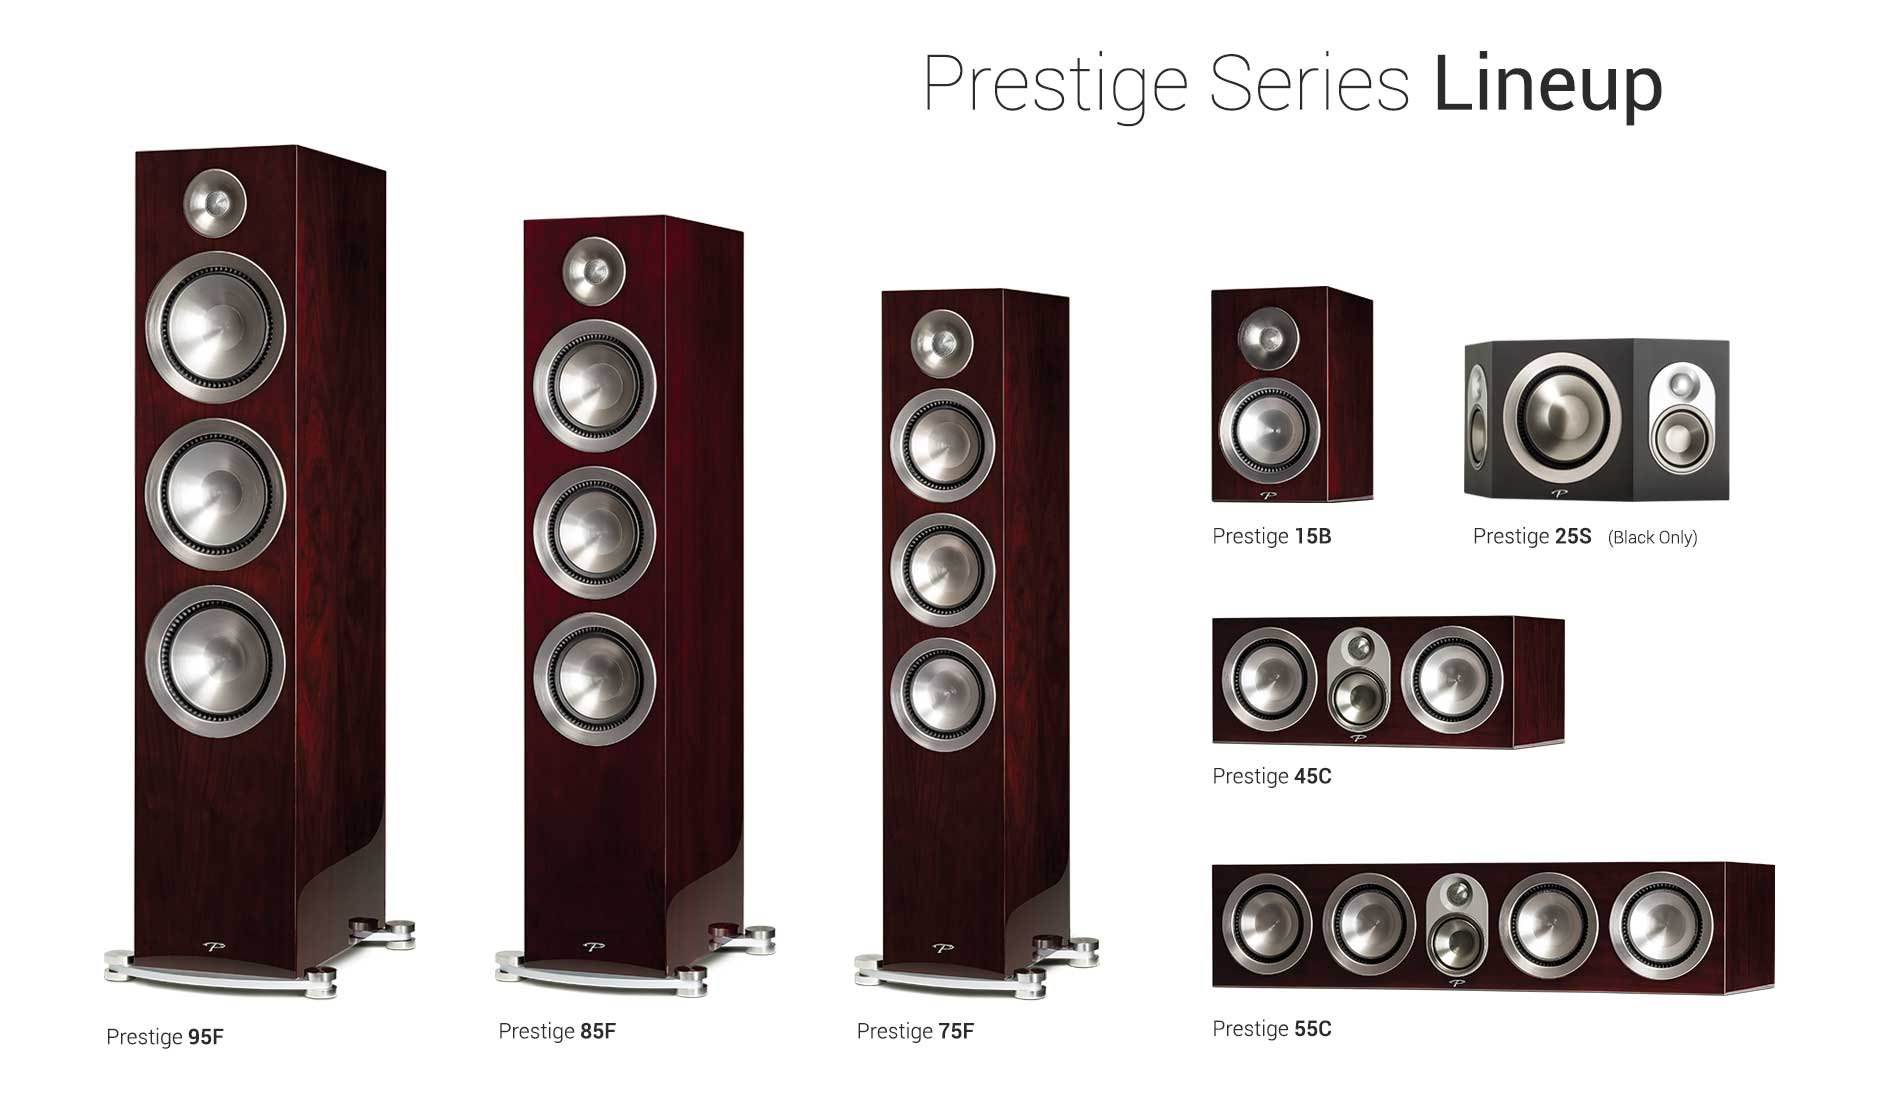 Paradigm Prestige Series Lineup Midnight Cherry